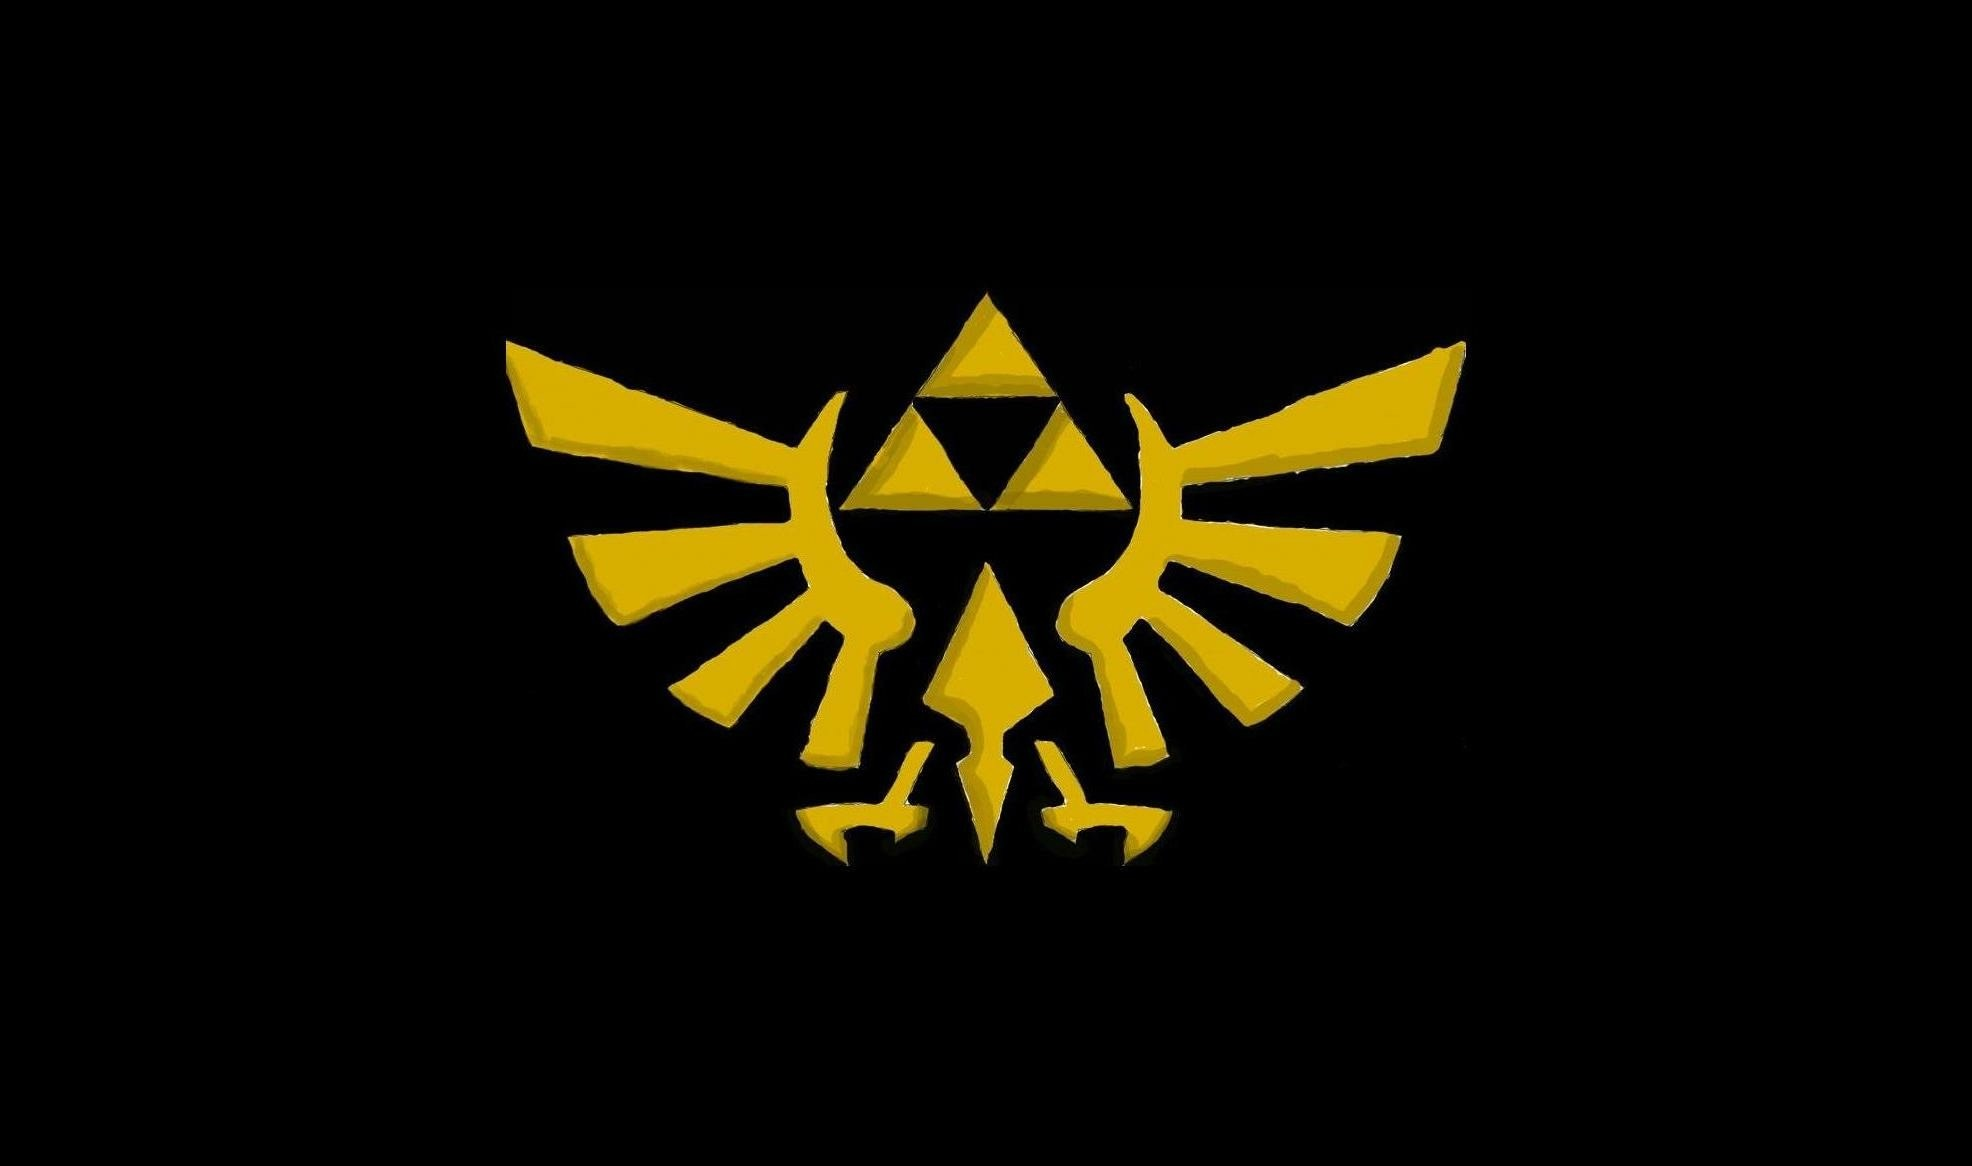 The Legend Of Zelda Ocarina Of Time Wallpapers Group   HD Wallpapers    Pinterest   Wallpaper